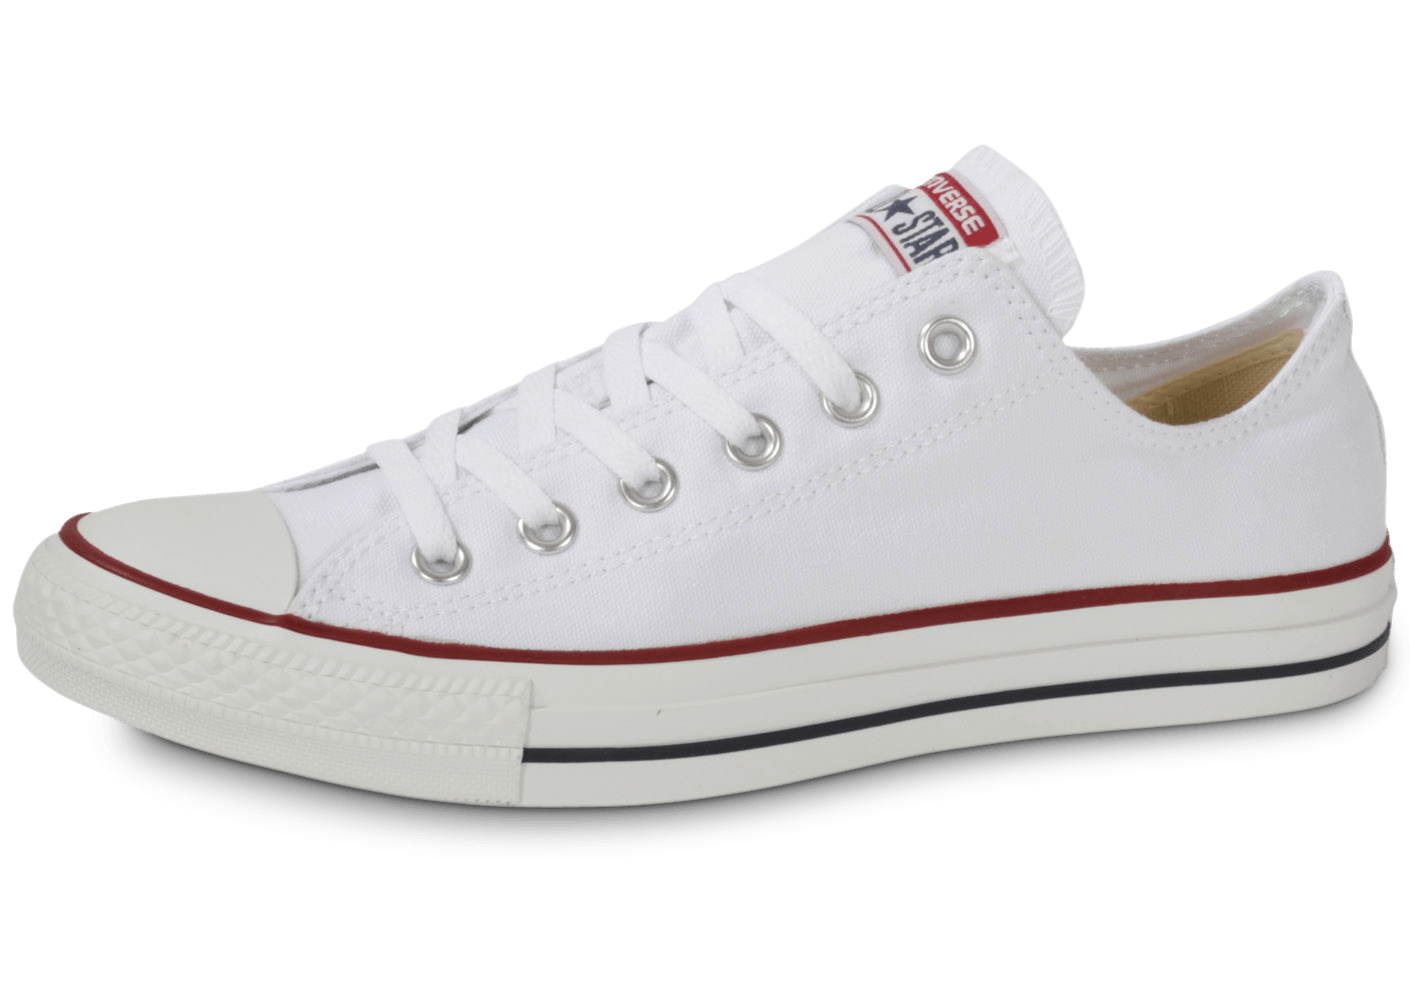 converse chuck taylor all star low blanche chaussures baskets homme chausport. Black Bedroom Furniture Sets. Home Design Ideas